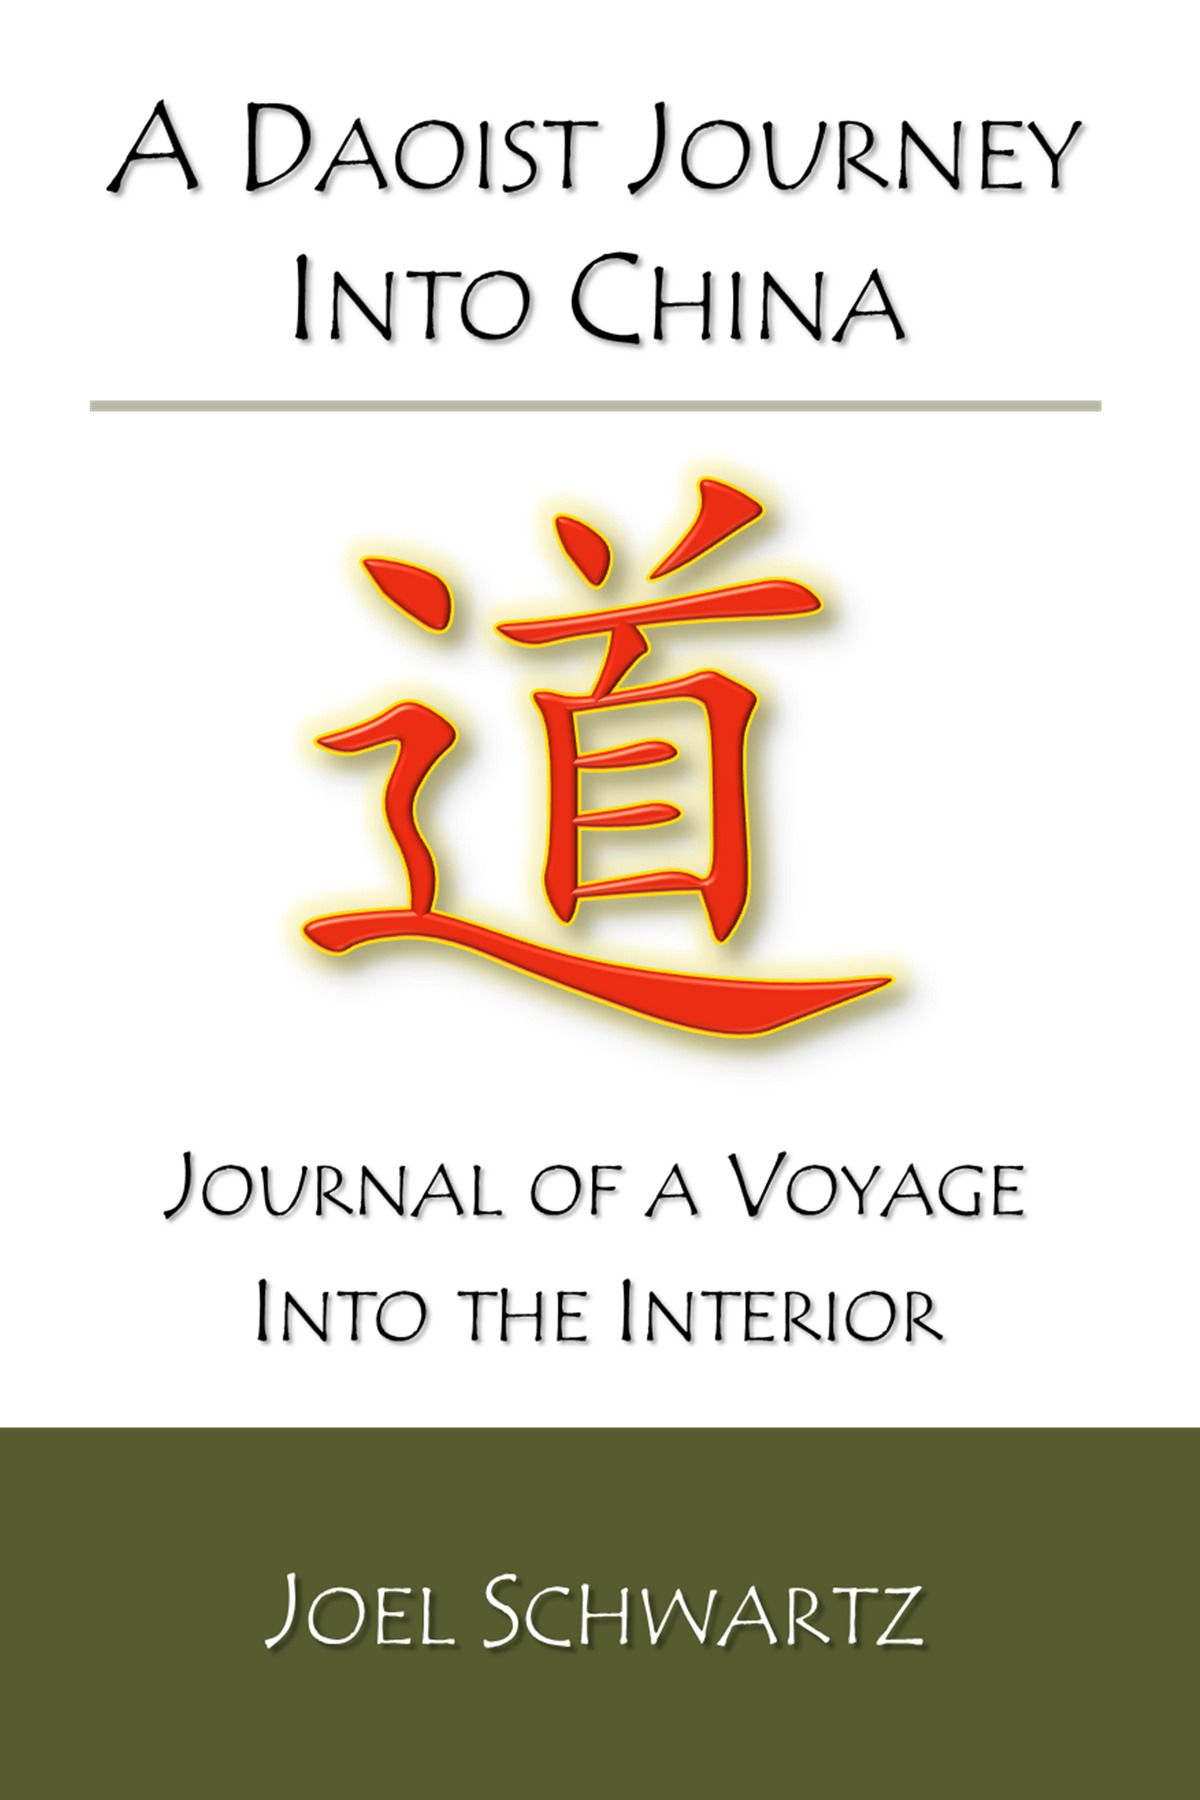 A Daoist Journey into China: journal of a voyage into the interior